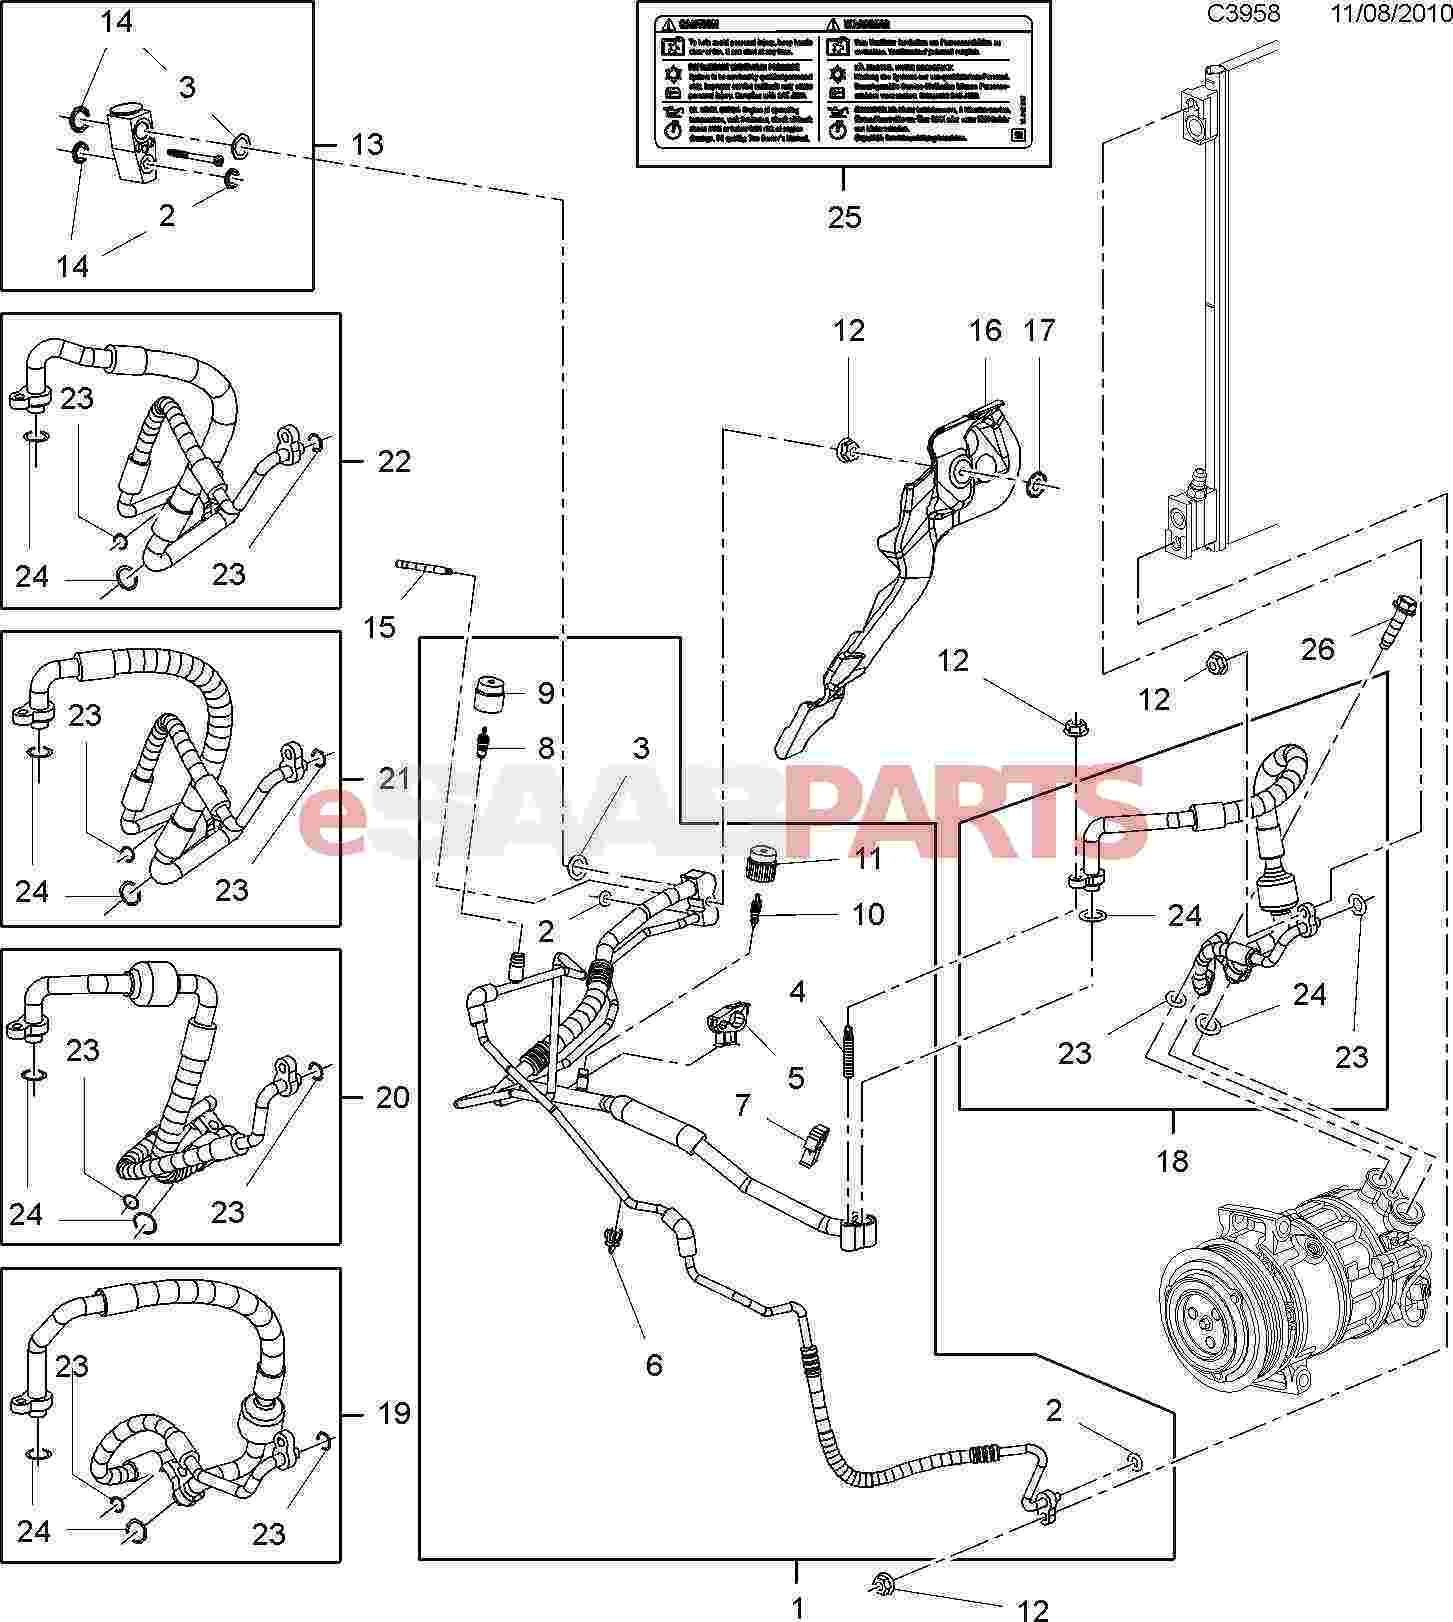 ... Saab 900 Ignition Wiring Diagram Besides 2003 9 Model T ...